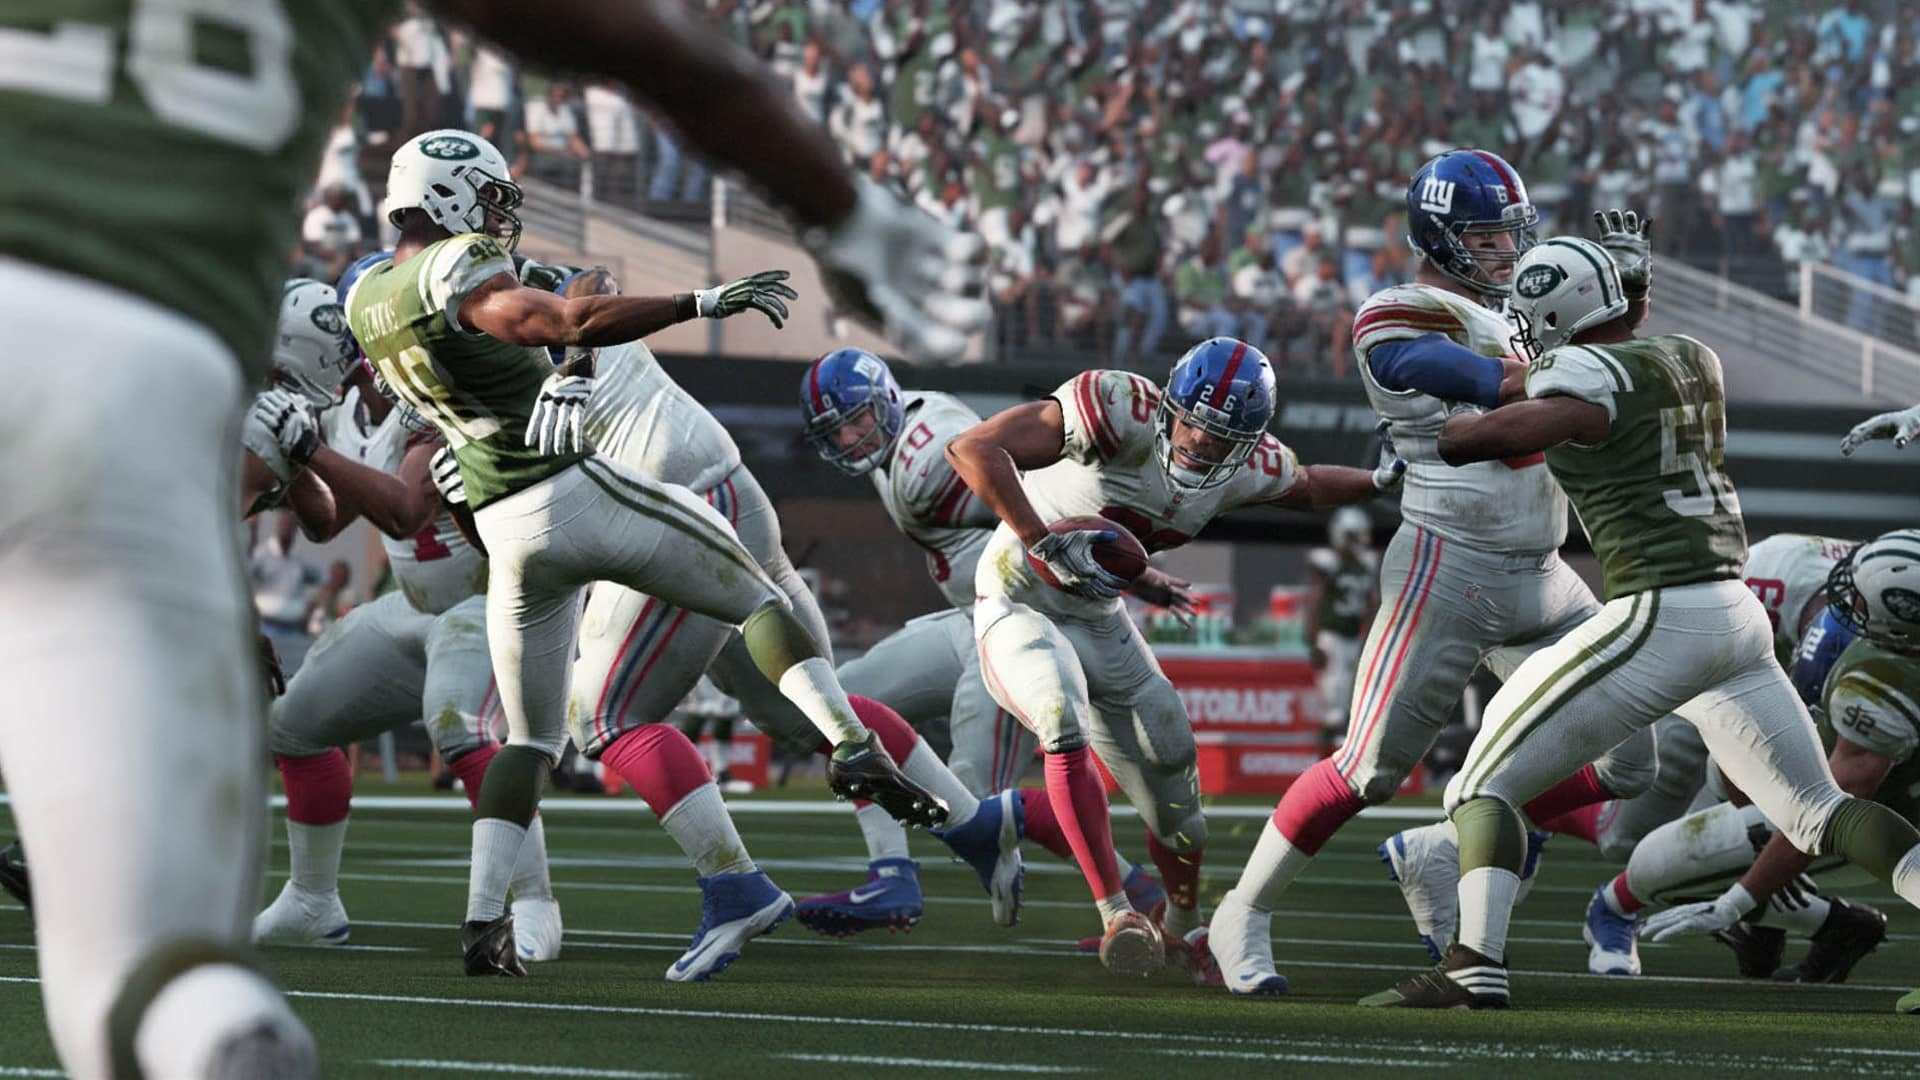 Annual Sports Games Should Be Replaced With DLC